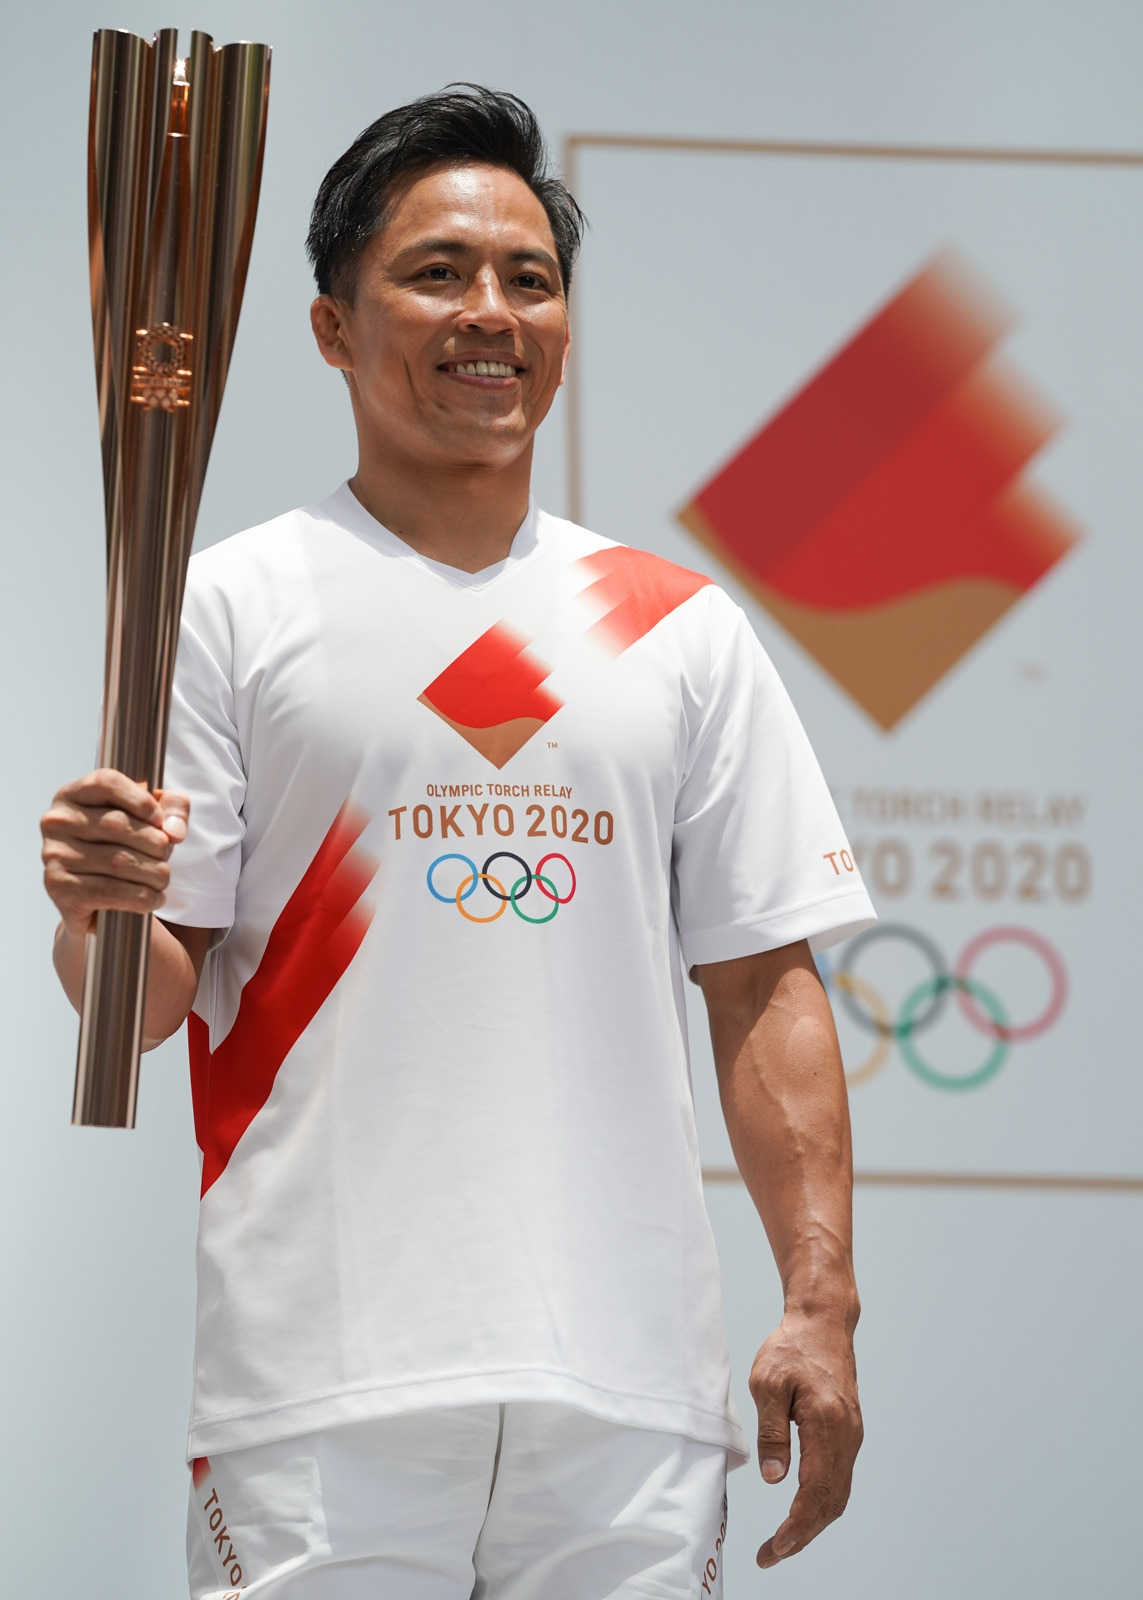 Tokyo 2020 Torch Relay